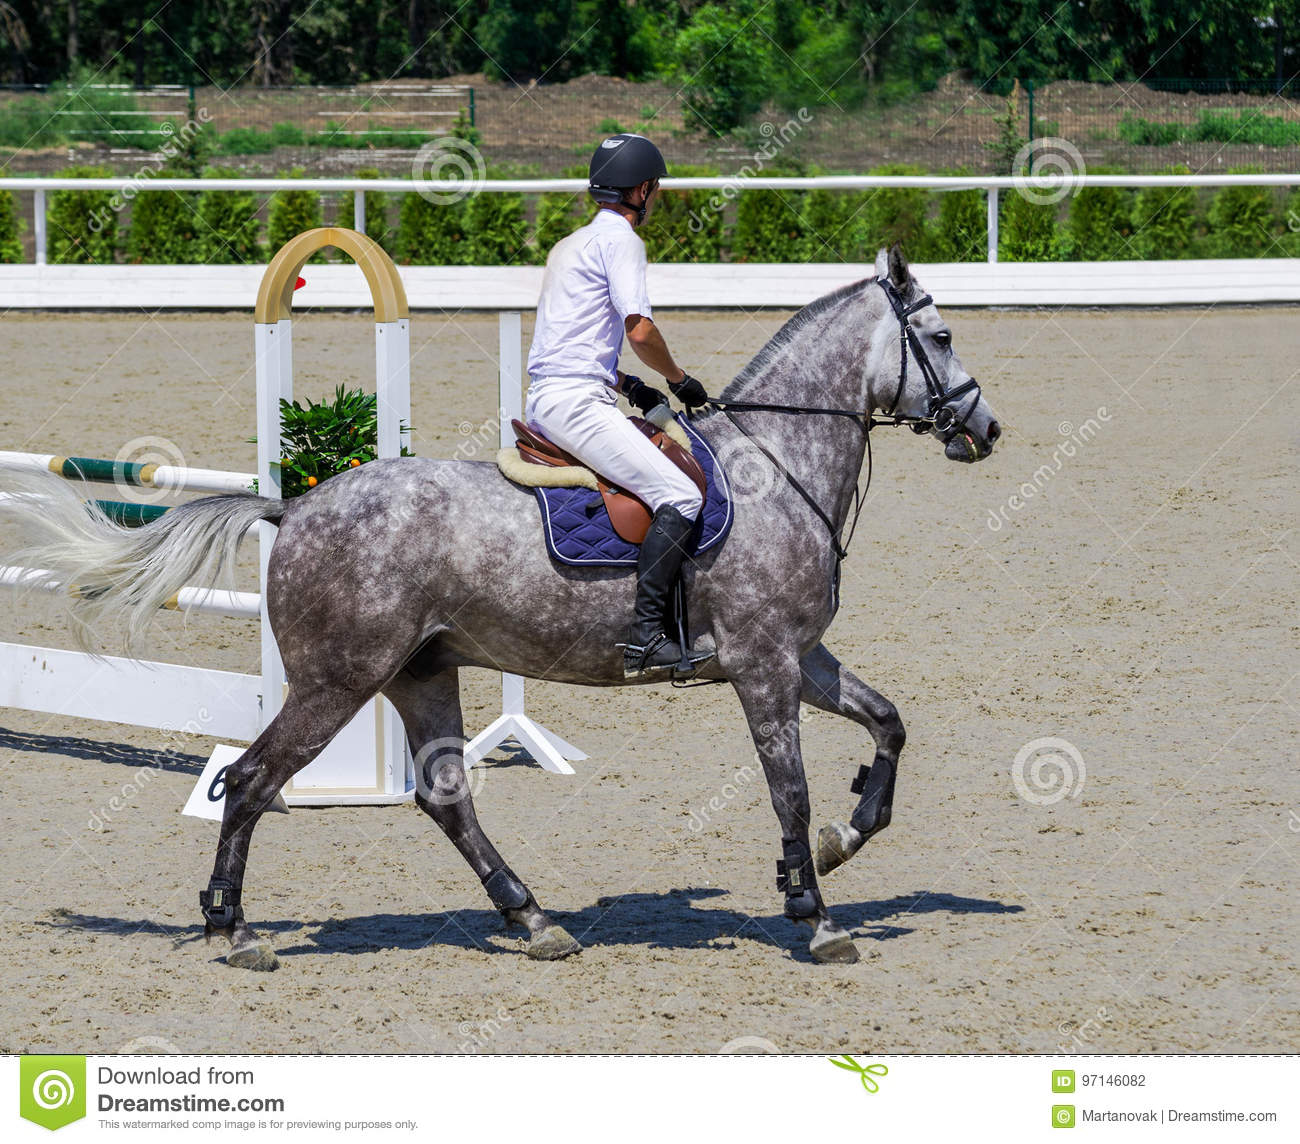 Dappled Gray Horse And Rider In White Shirt Over A Jump Stock Photo Image Of Competition Bright 97146082